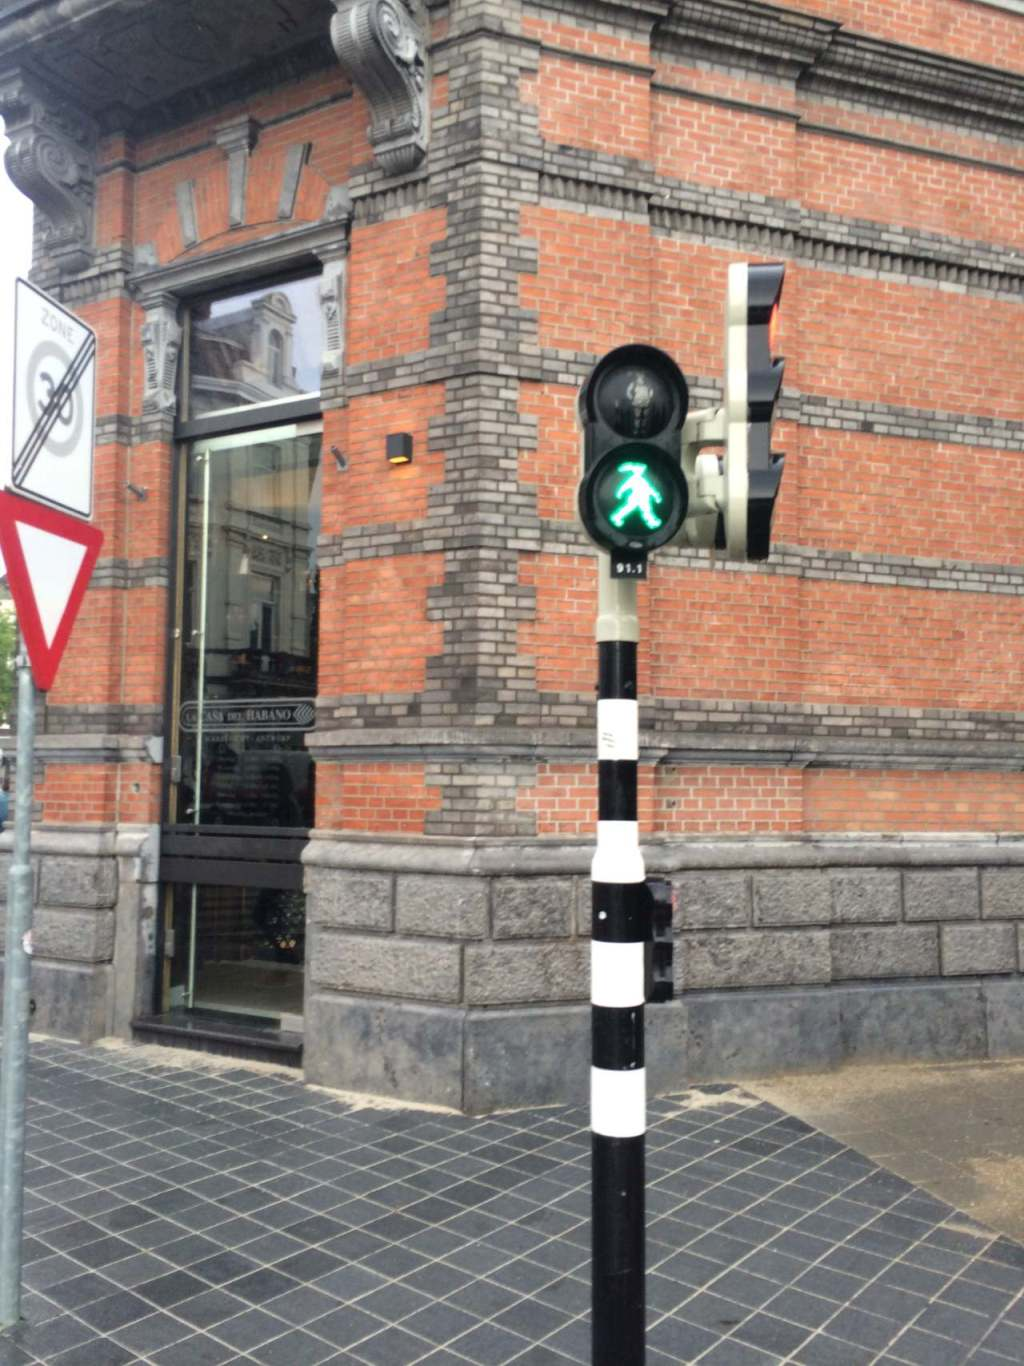 The city also boasts a single walk sign designed to look like a woman. I'm pretty sure that this single-handedly solved gender-based inequality.